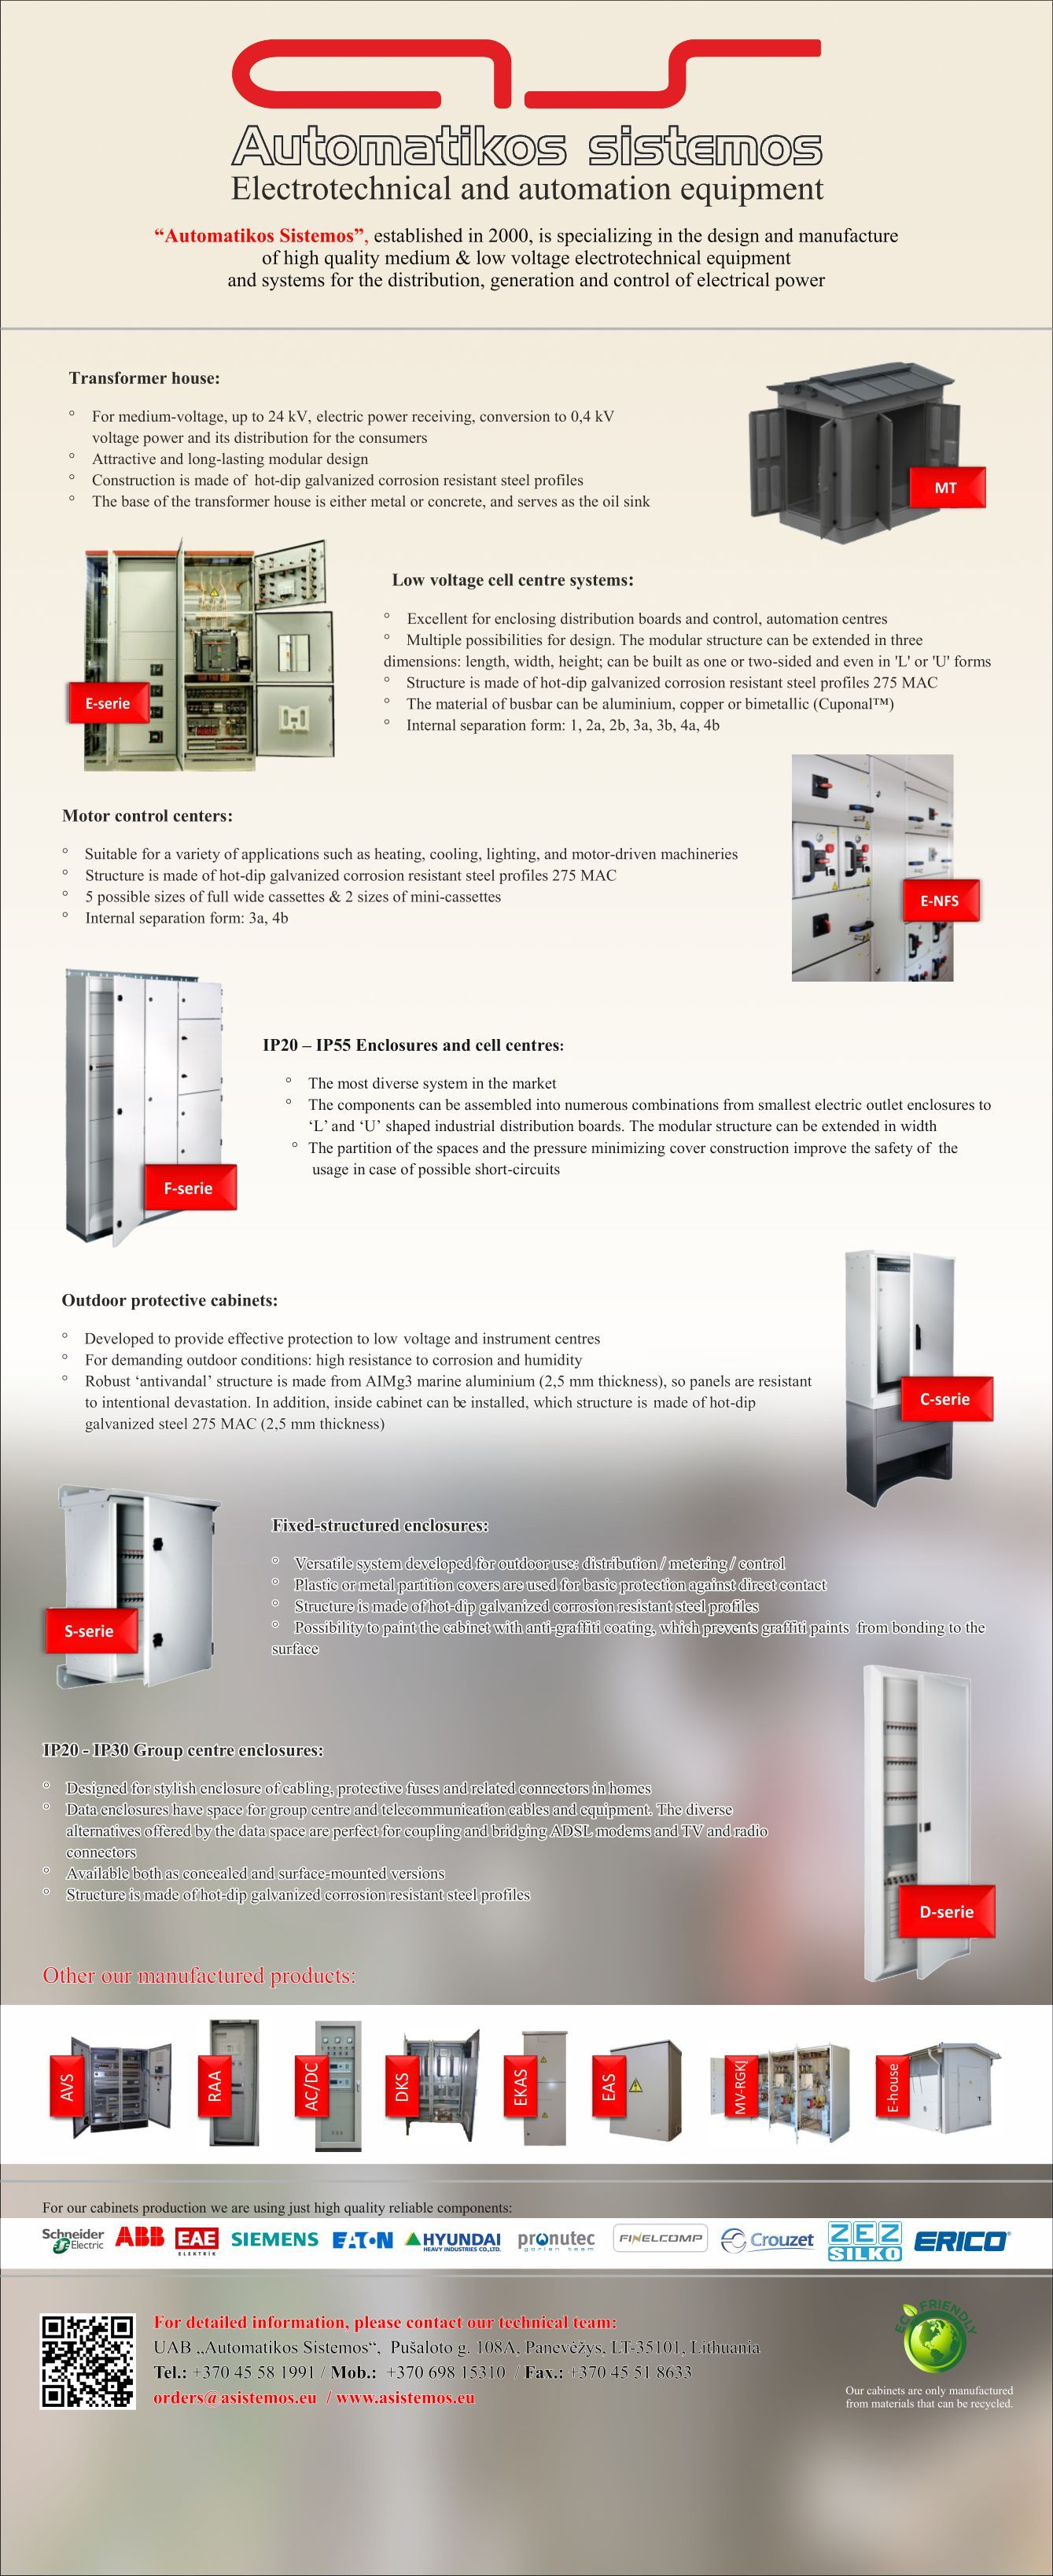 Low And Medium Voltage Electrotechnical And Automation Equipment Production Design Work Orders Asistemos Lt Www Asistem Design Working Automation Design